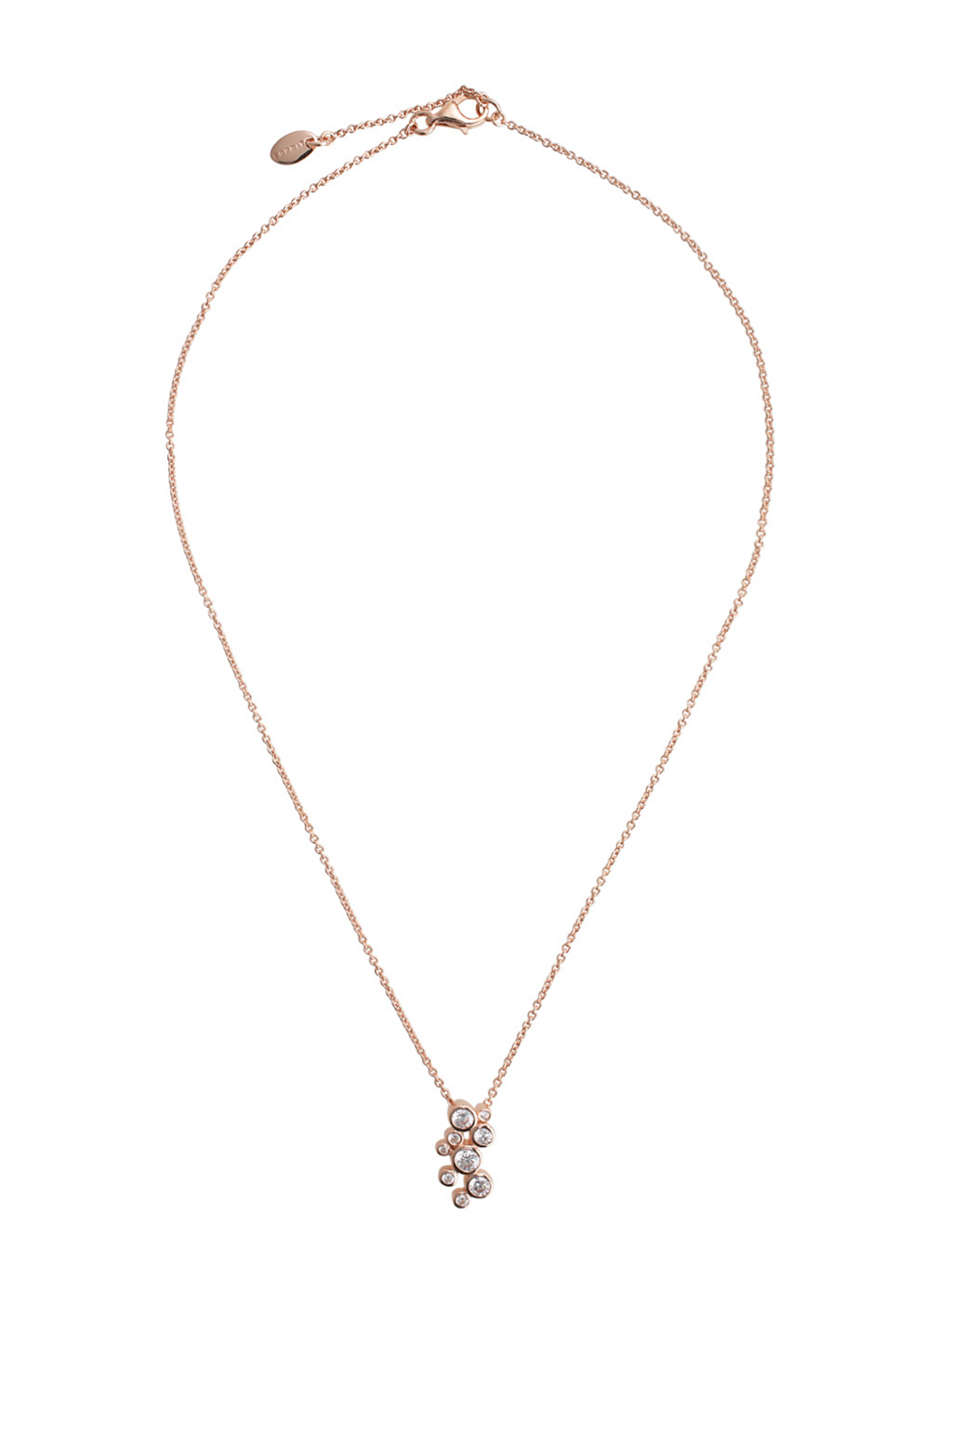 ES Symphony Rose: rose gold plated necklace with round pendants set with sparkling stones, approx. 420 mm long